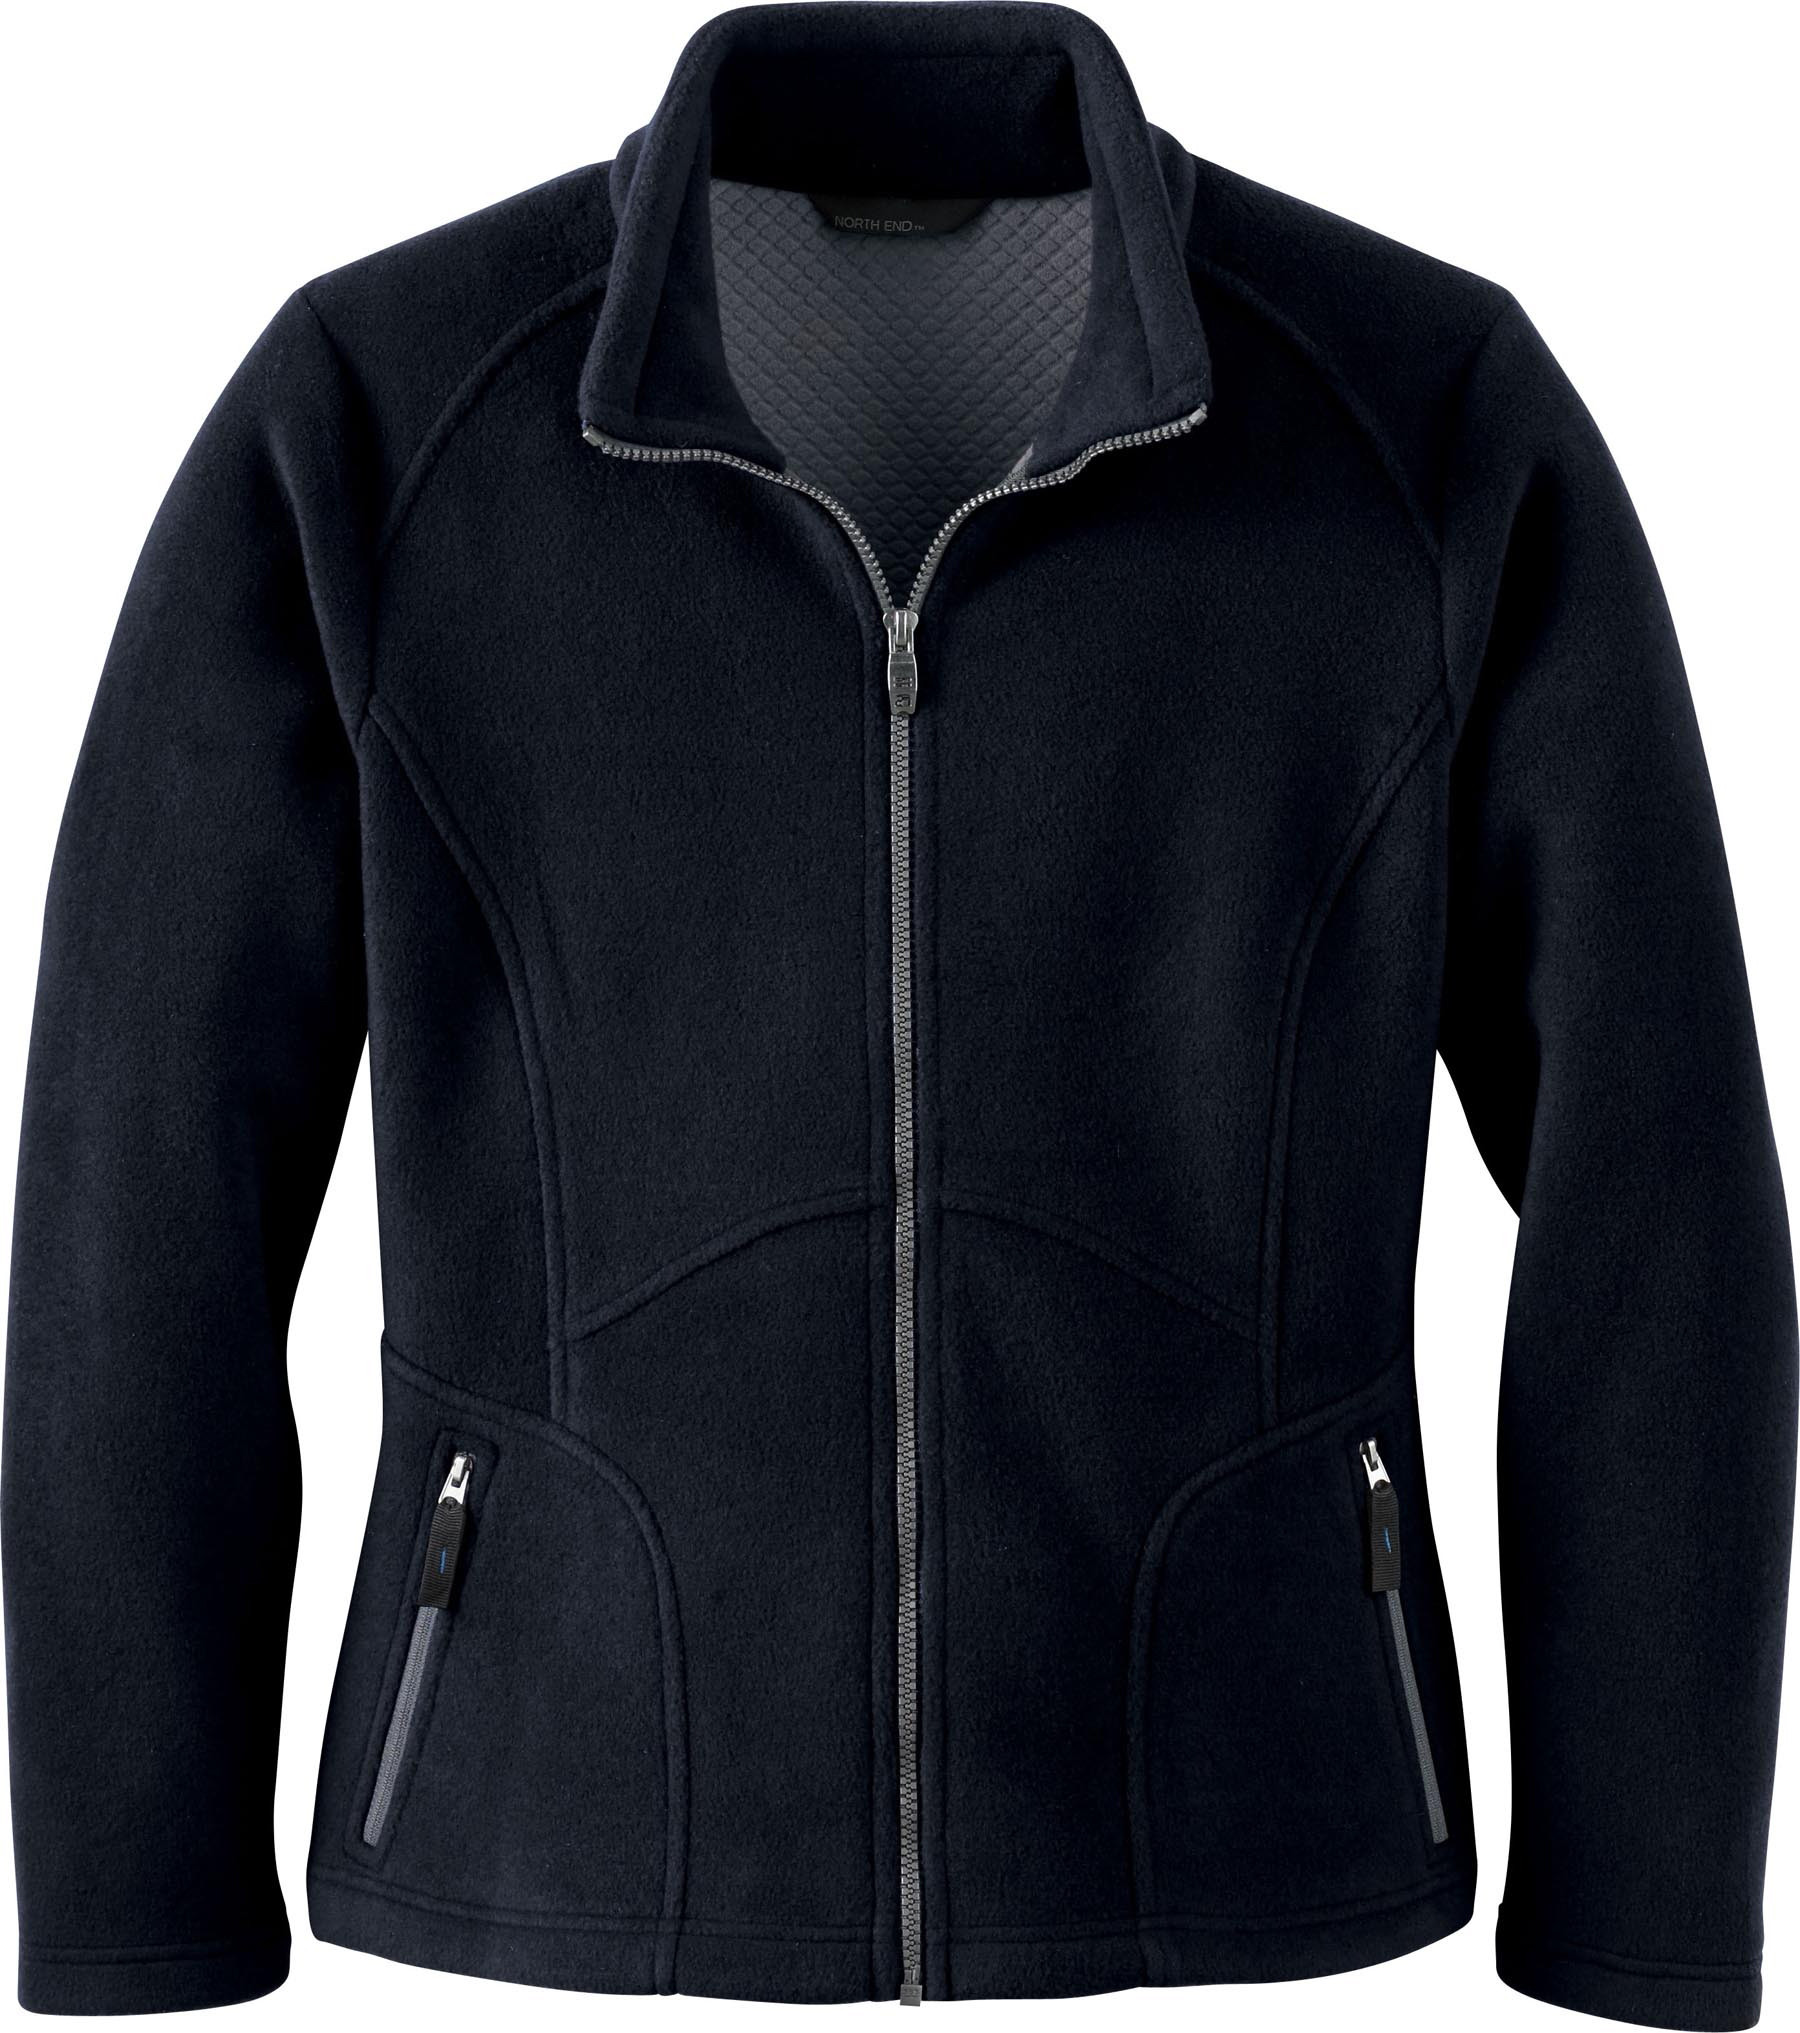 Ash City Bonded Fleece 78078 - Ladies' Bonded Jacquard ...